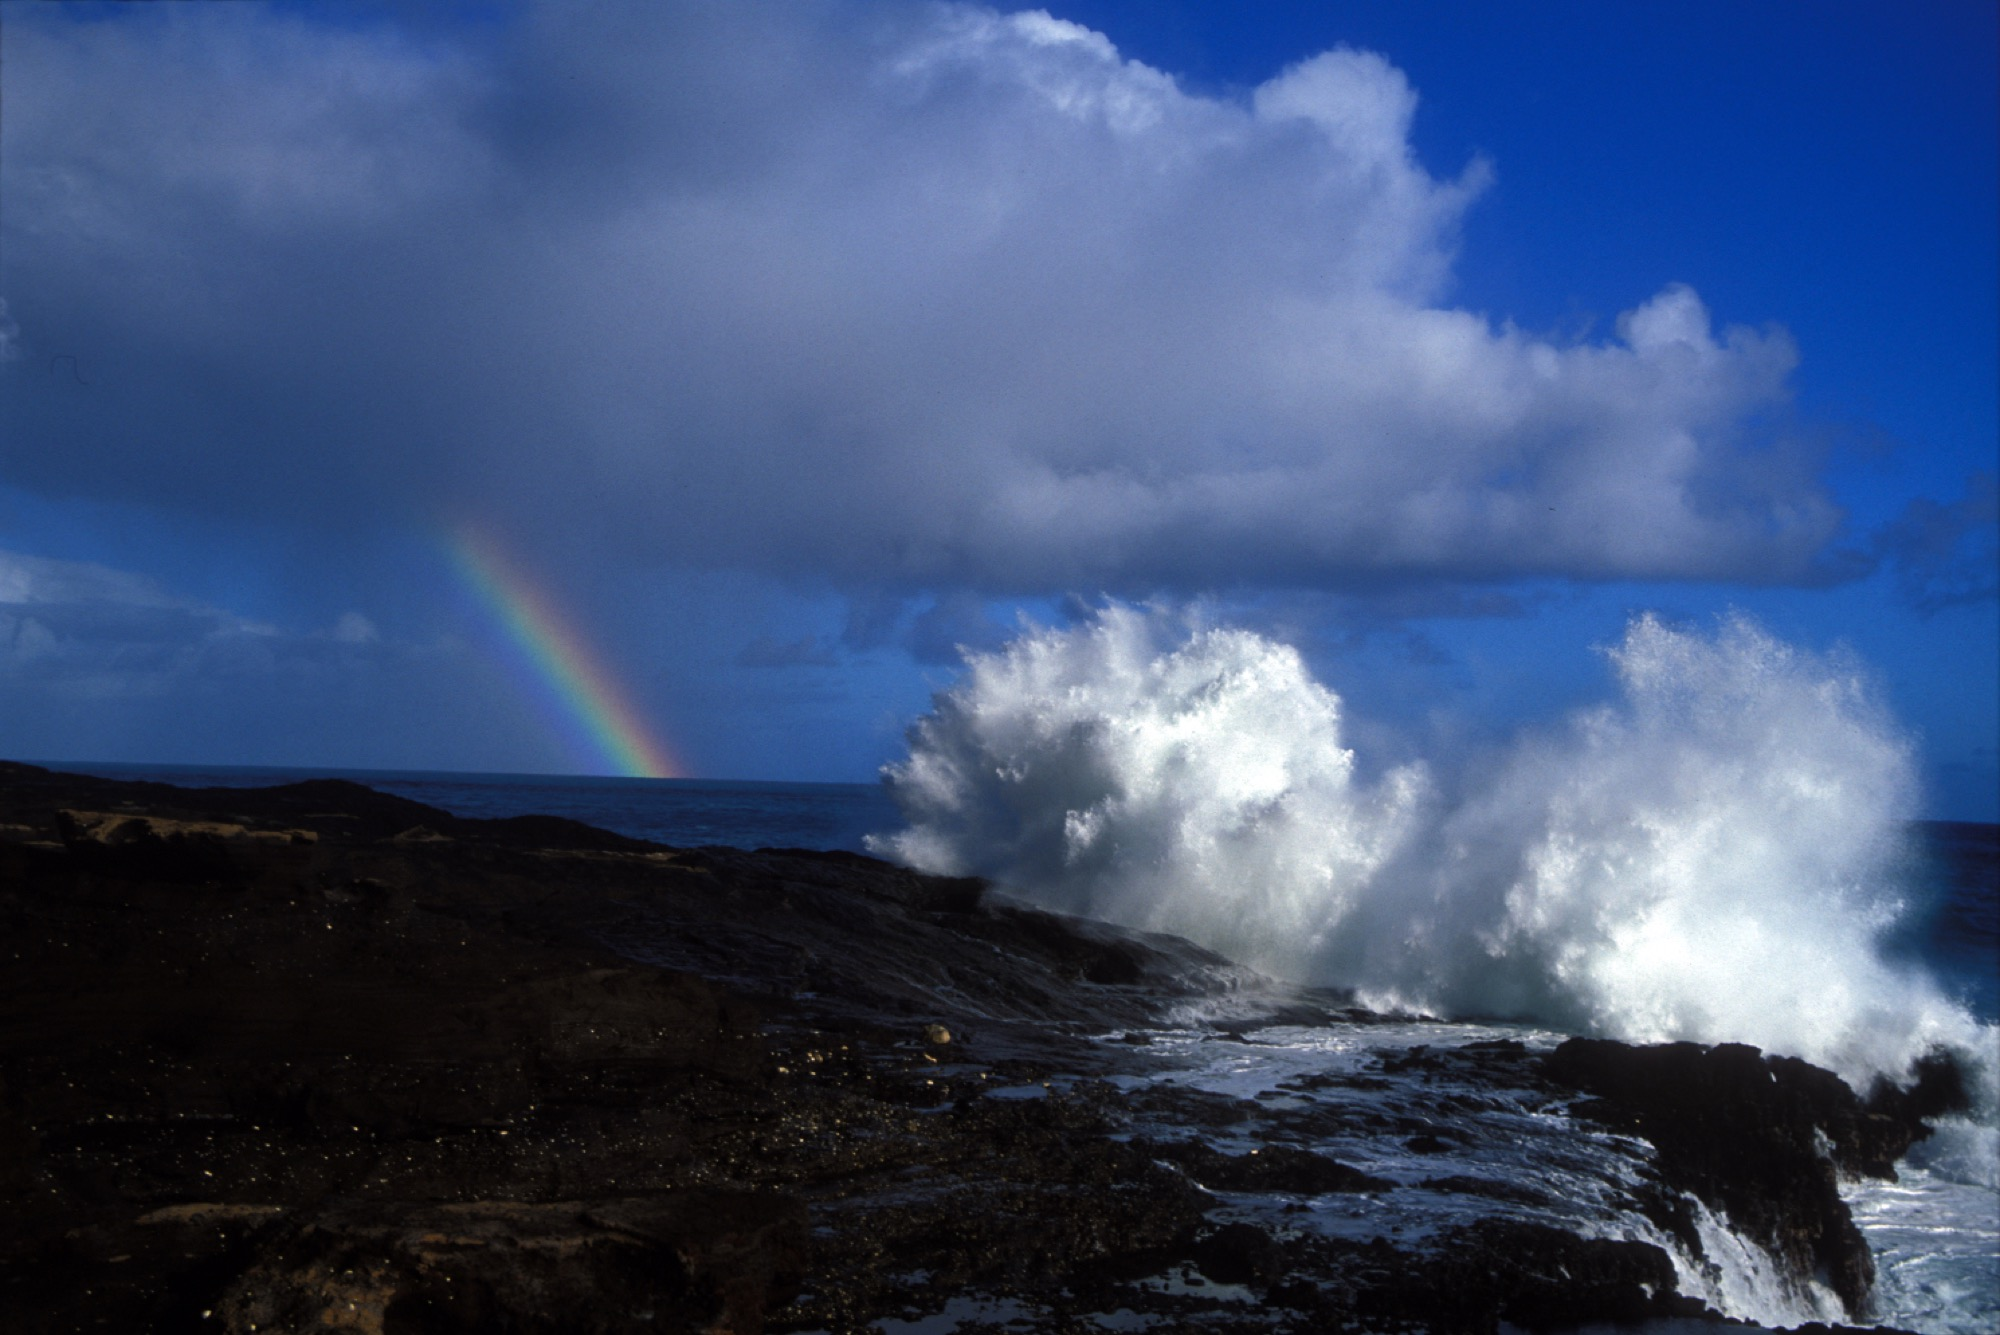 waves crash on a rocky shore. in the distance are patchy clouds and a pillar of a rainbow coming down from the cloud and disappearing into the ocean